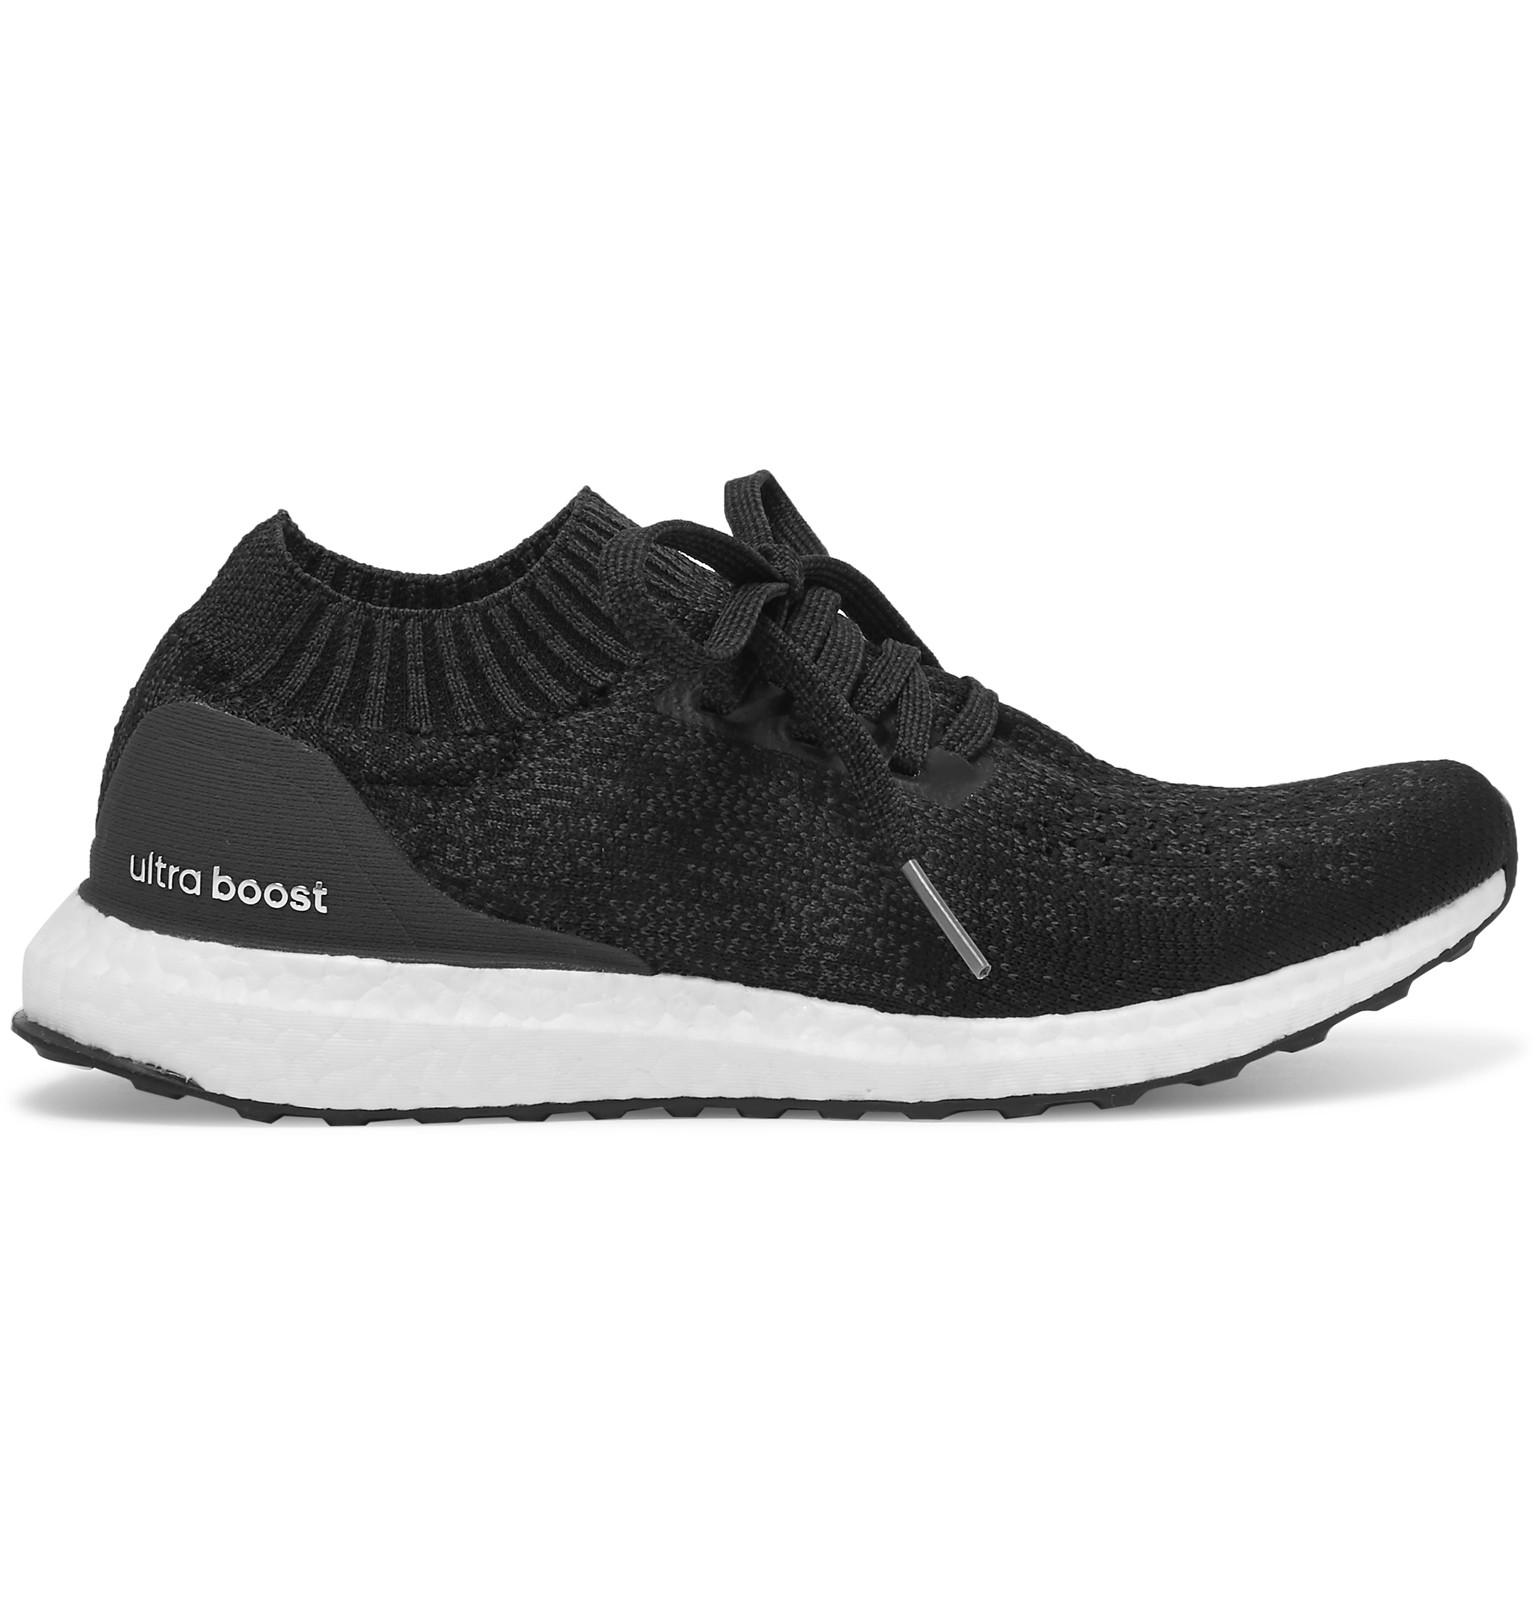 57db99bd69895 adidas Originals Ultra Boost Uncaged Mélange Primeknit Sneakers in ...